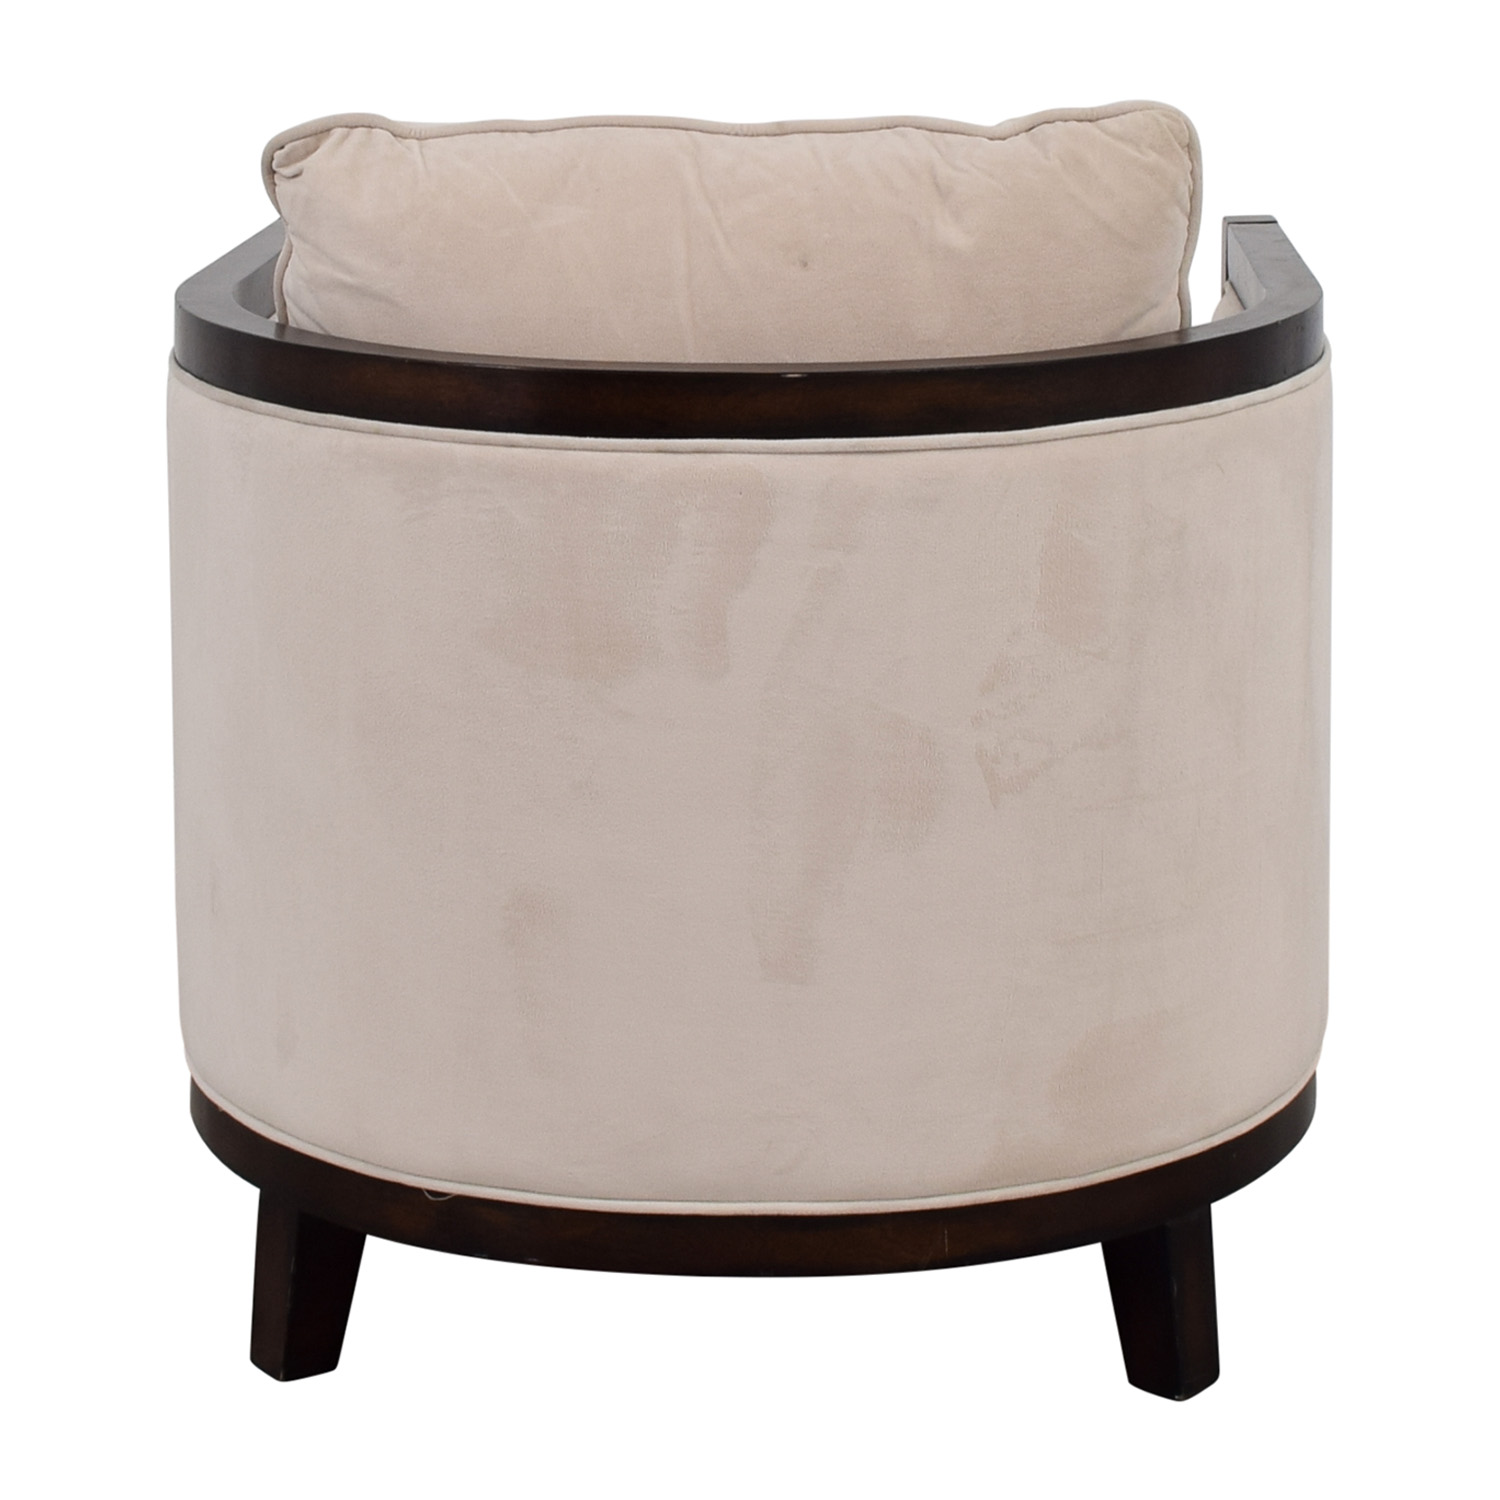 shop Coaster Coaster Beige Leisure Accent Chair online